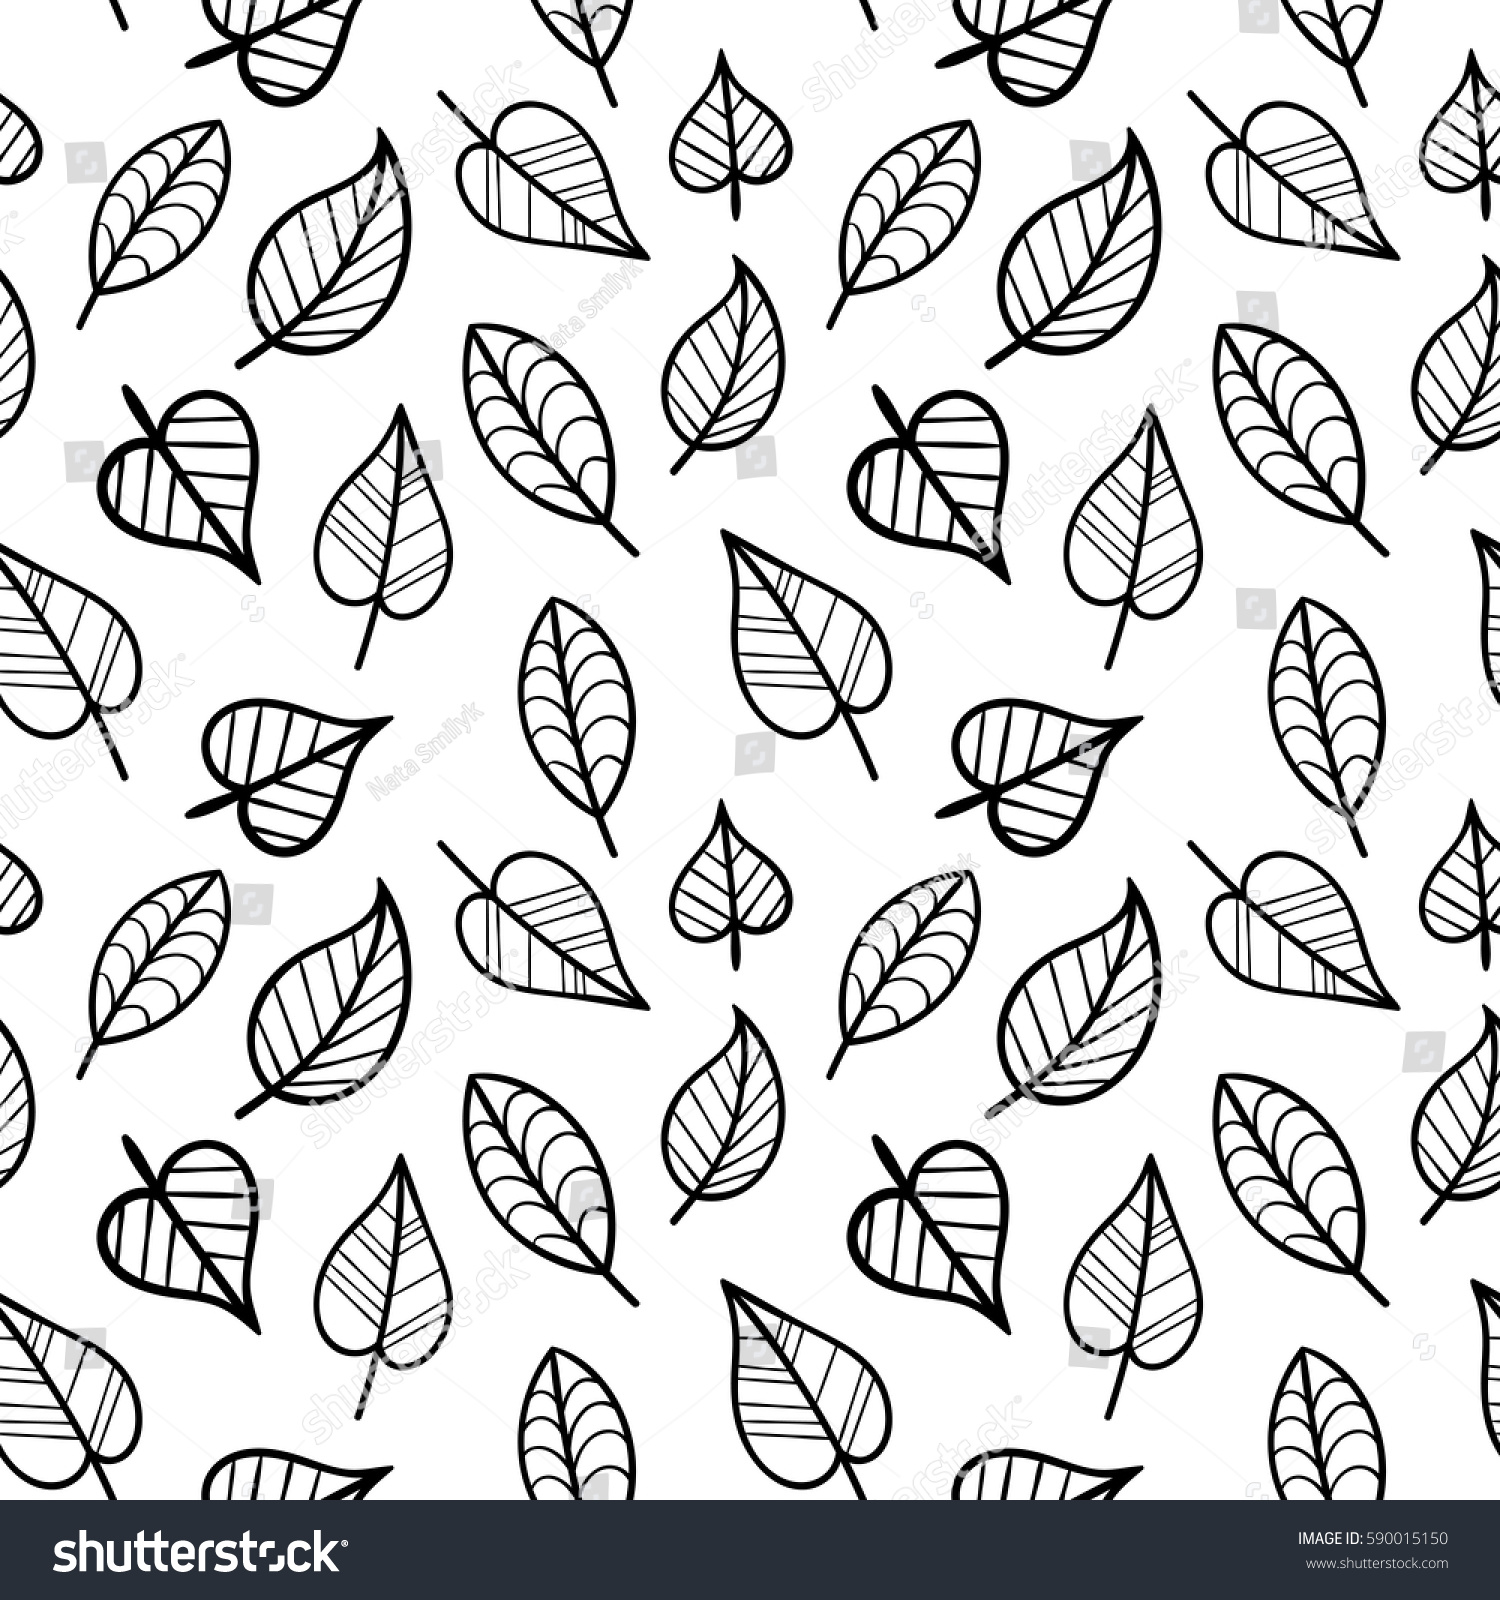 Coloring Page Seamless Pattern with Fall. Black and White Contour ...